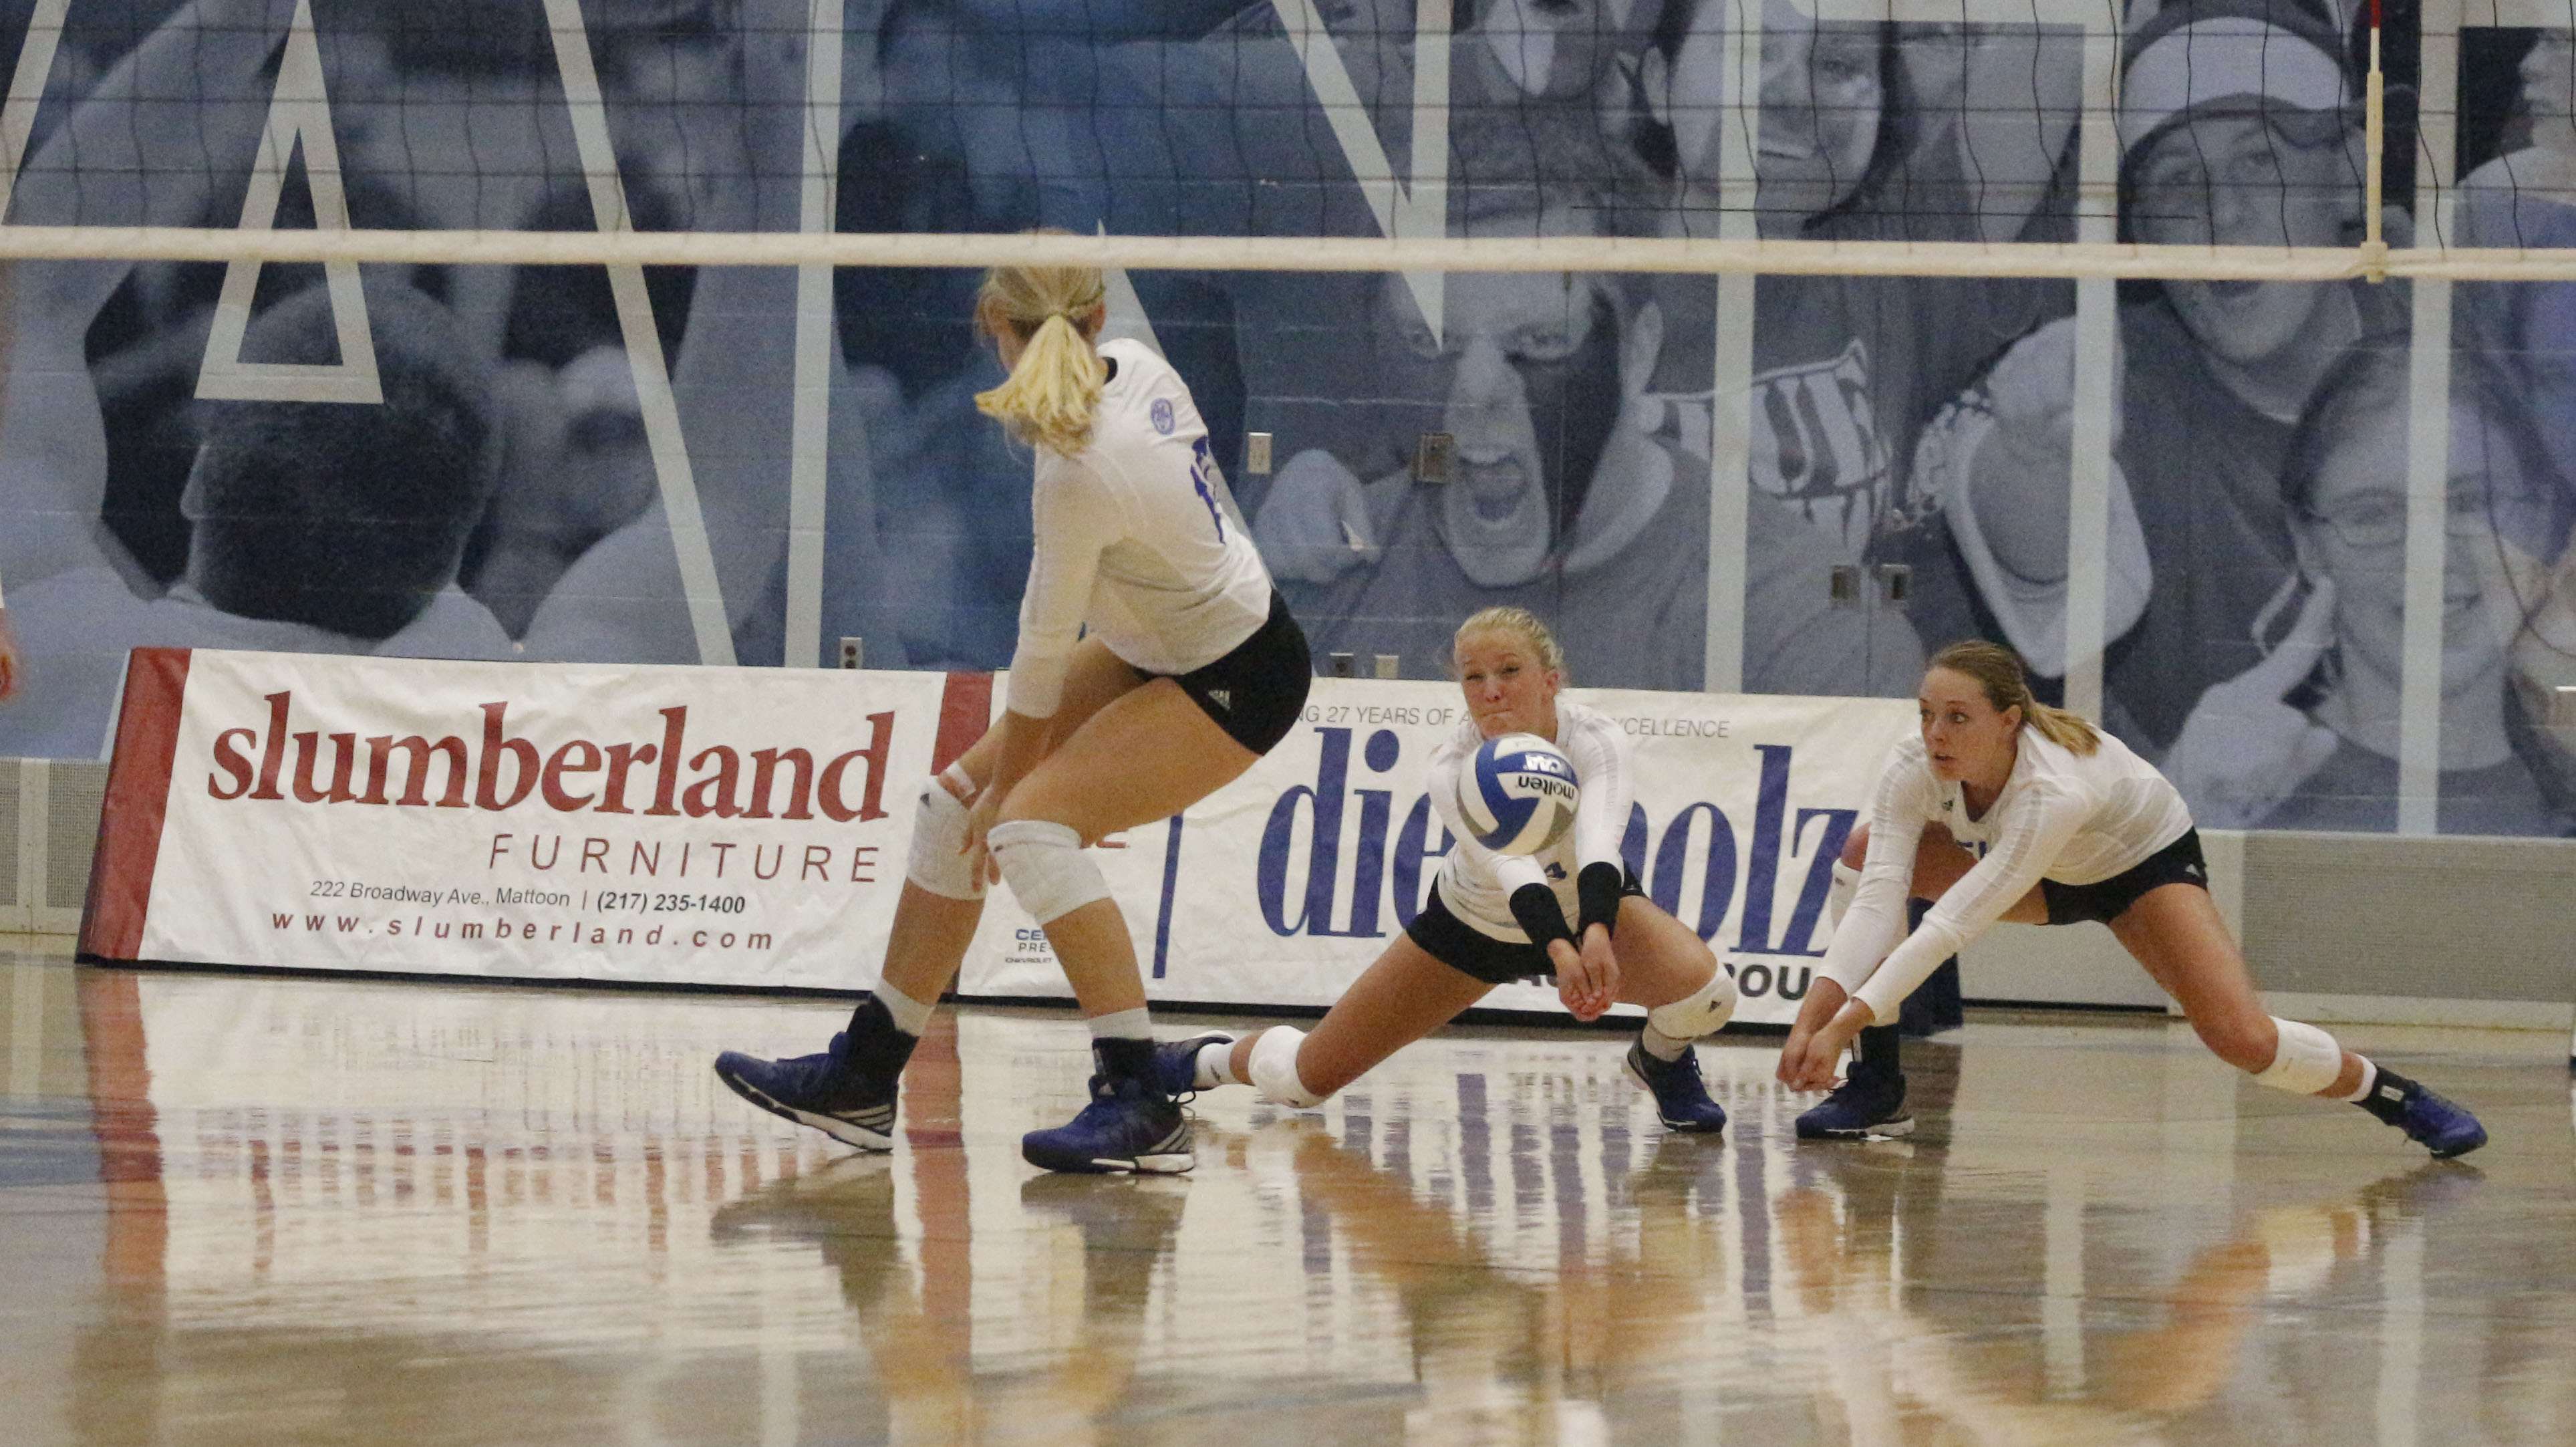 Lindsey Powers returns a serve while teammate Josie Winner backs her up in a 3-2 loss to Butler on Tuesday in Lantz Arena.